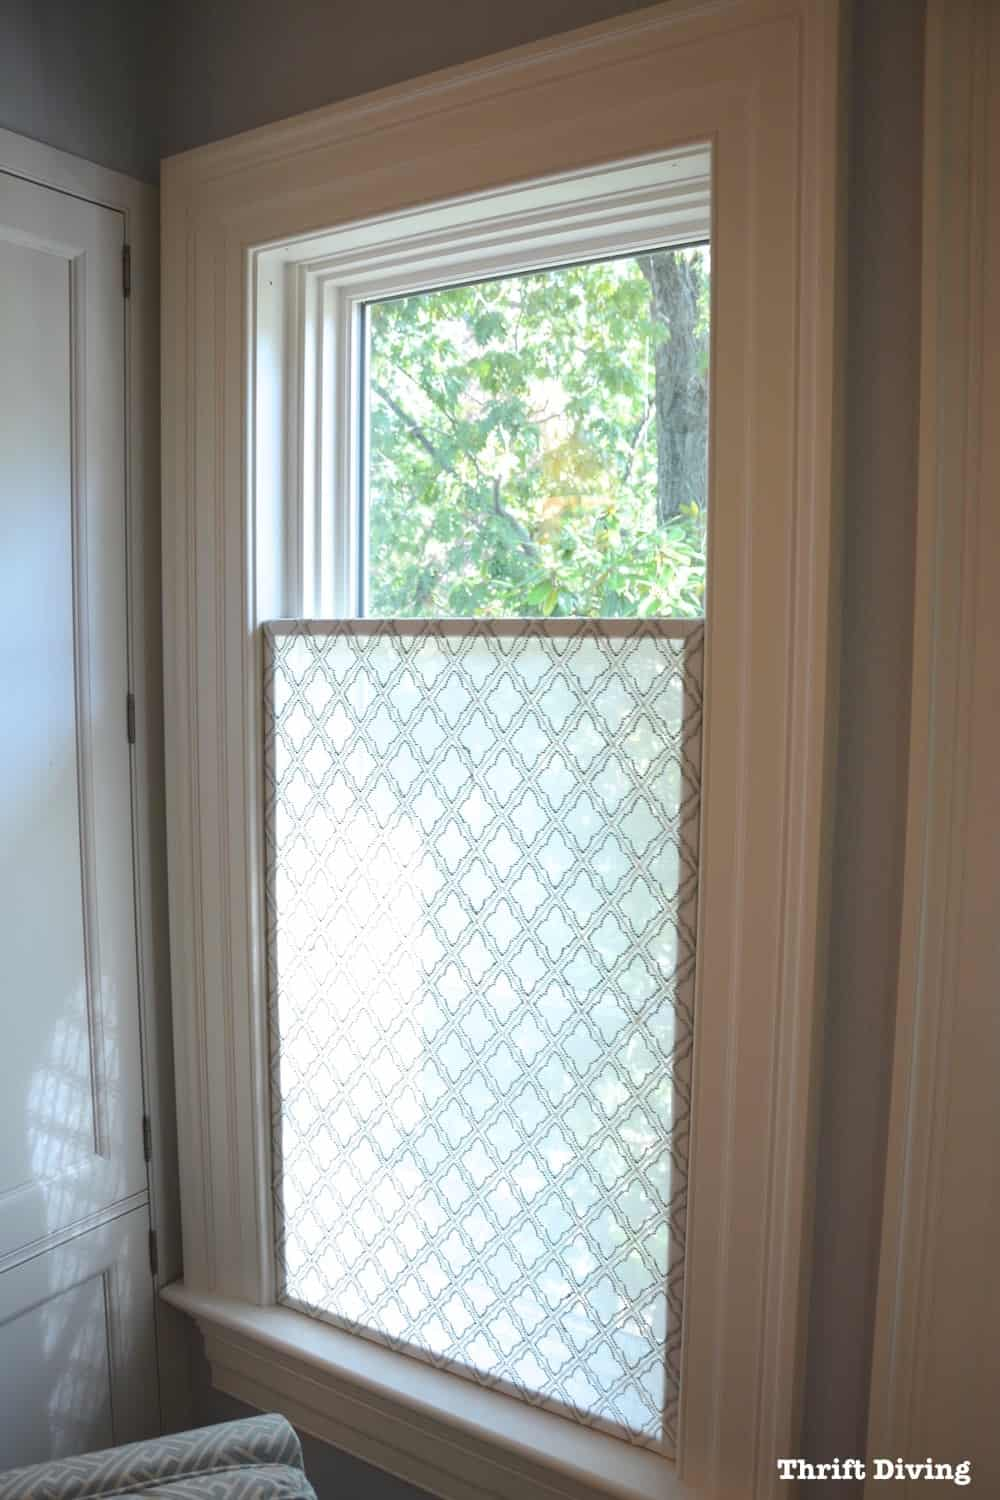 Pretty, sheer fabric diy privacy screen